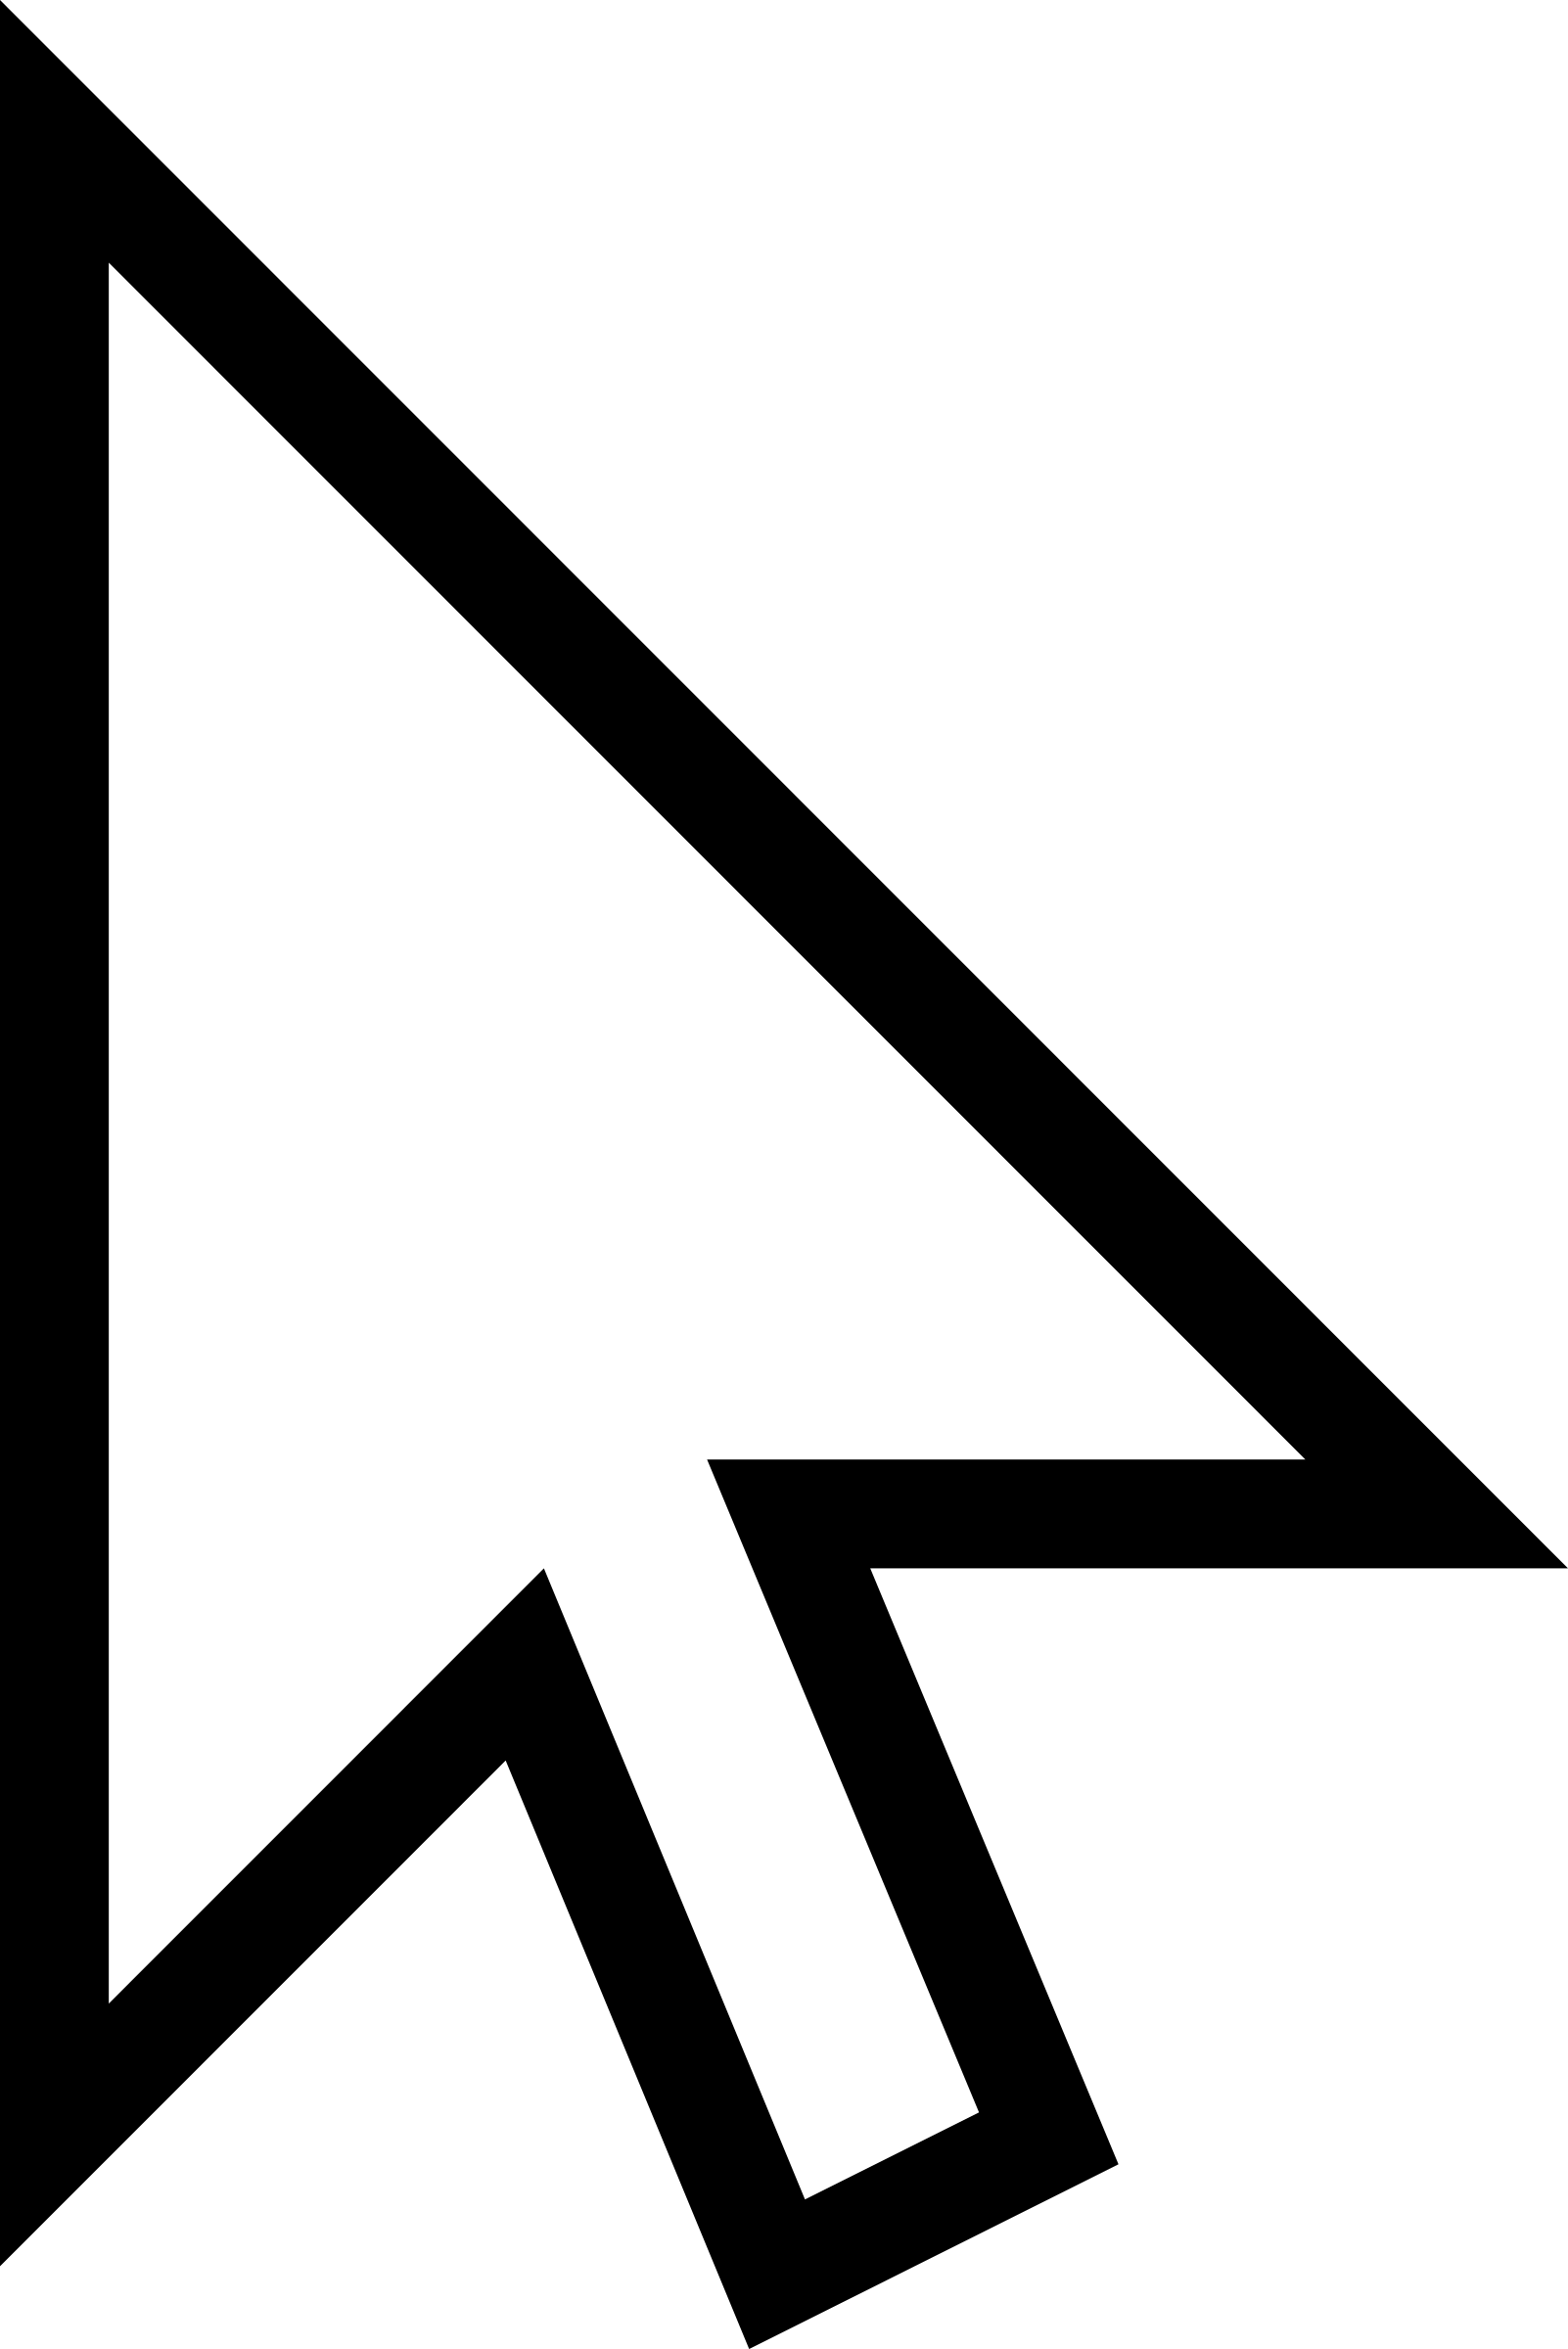 White Mouse Cursor Arrow By Qubodup image #1113 - Mouse Cursor Click PNG